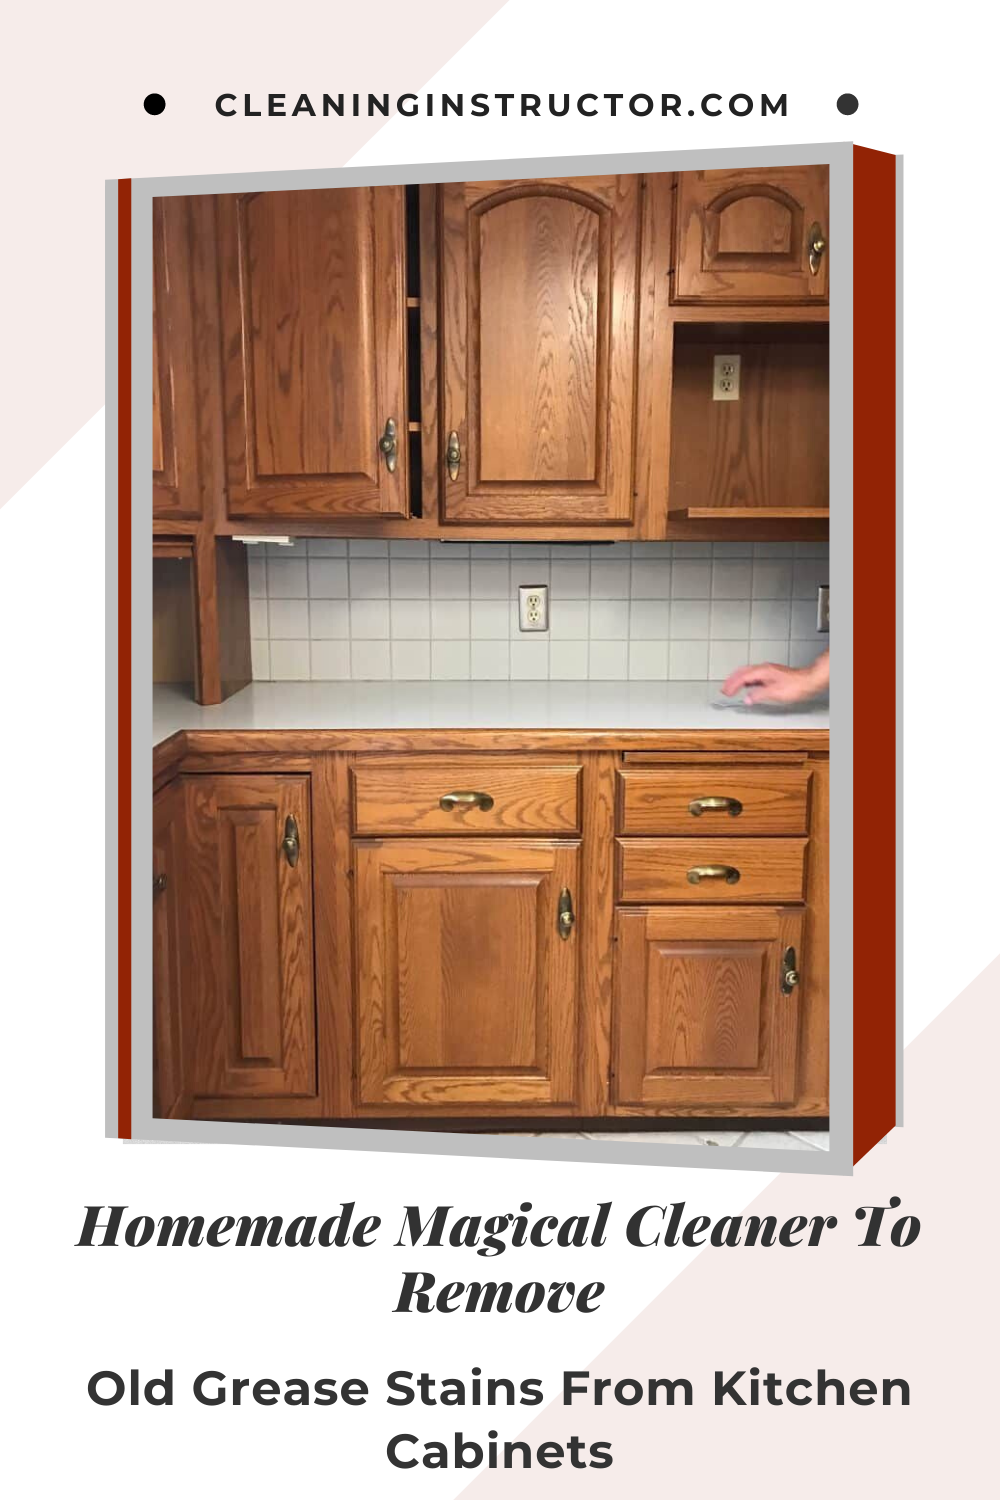 Homemade Magical Cleaner To Remove Old Grease Stains From Kitchen Cabinets In 2020 Staining Cabinets Kitchen Cabinets Grease Stains